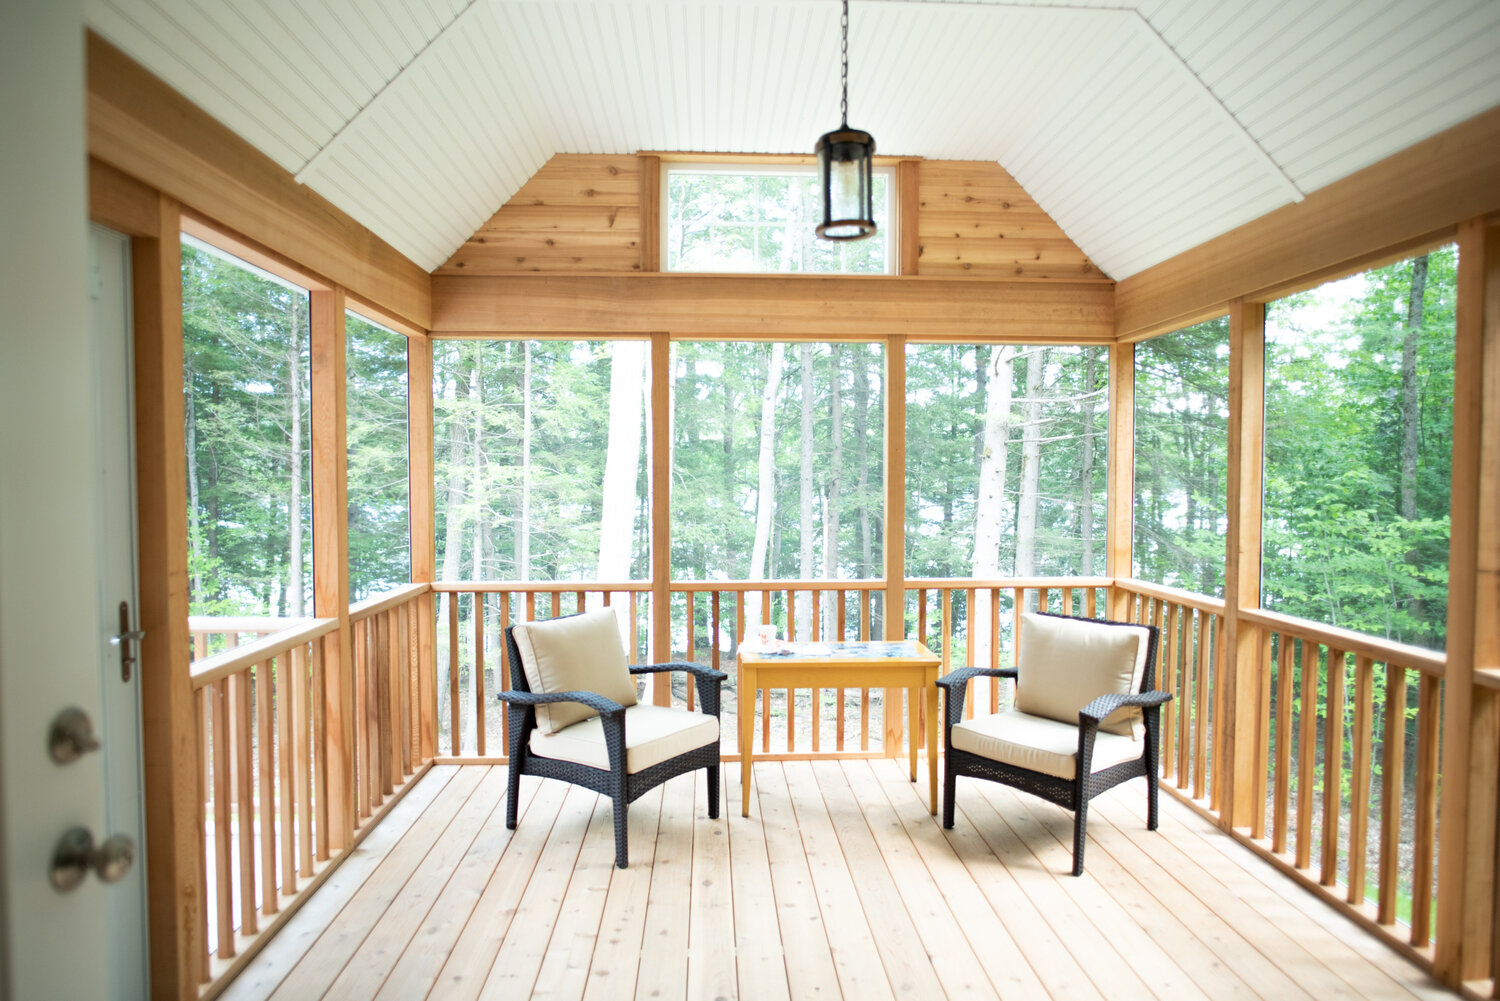 Outdoor Living Space Design 5 tips for designing the perfect outdoor living space